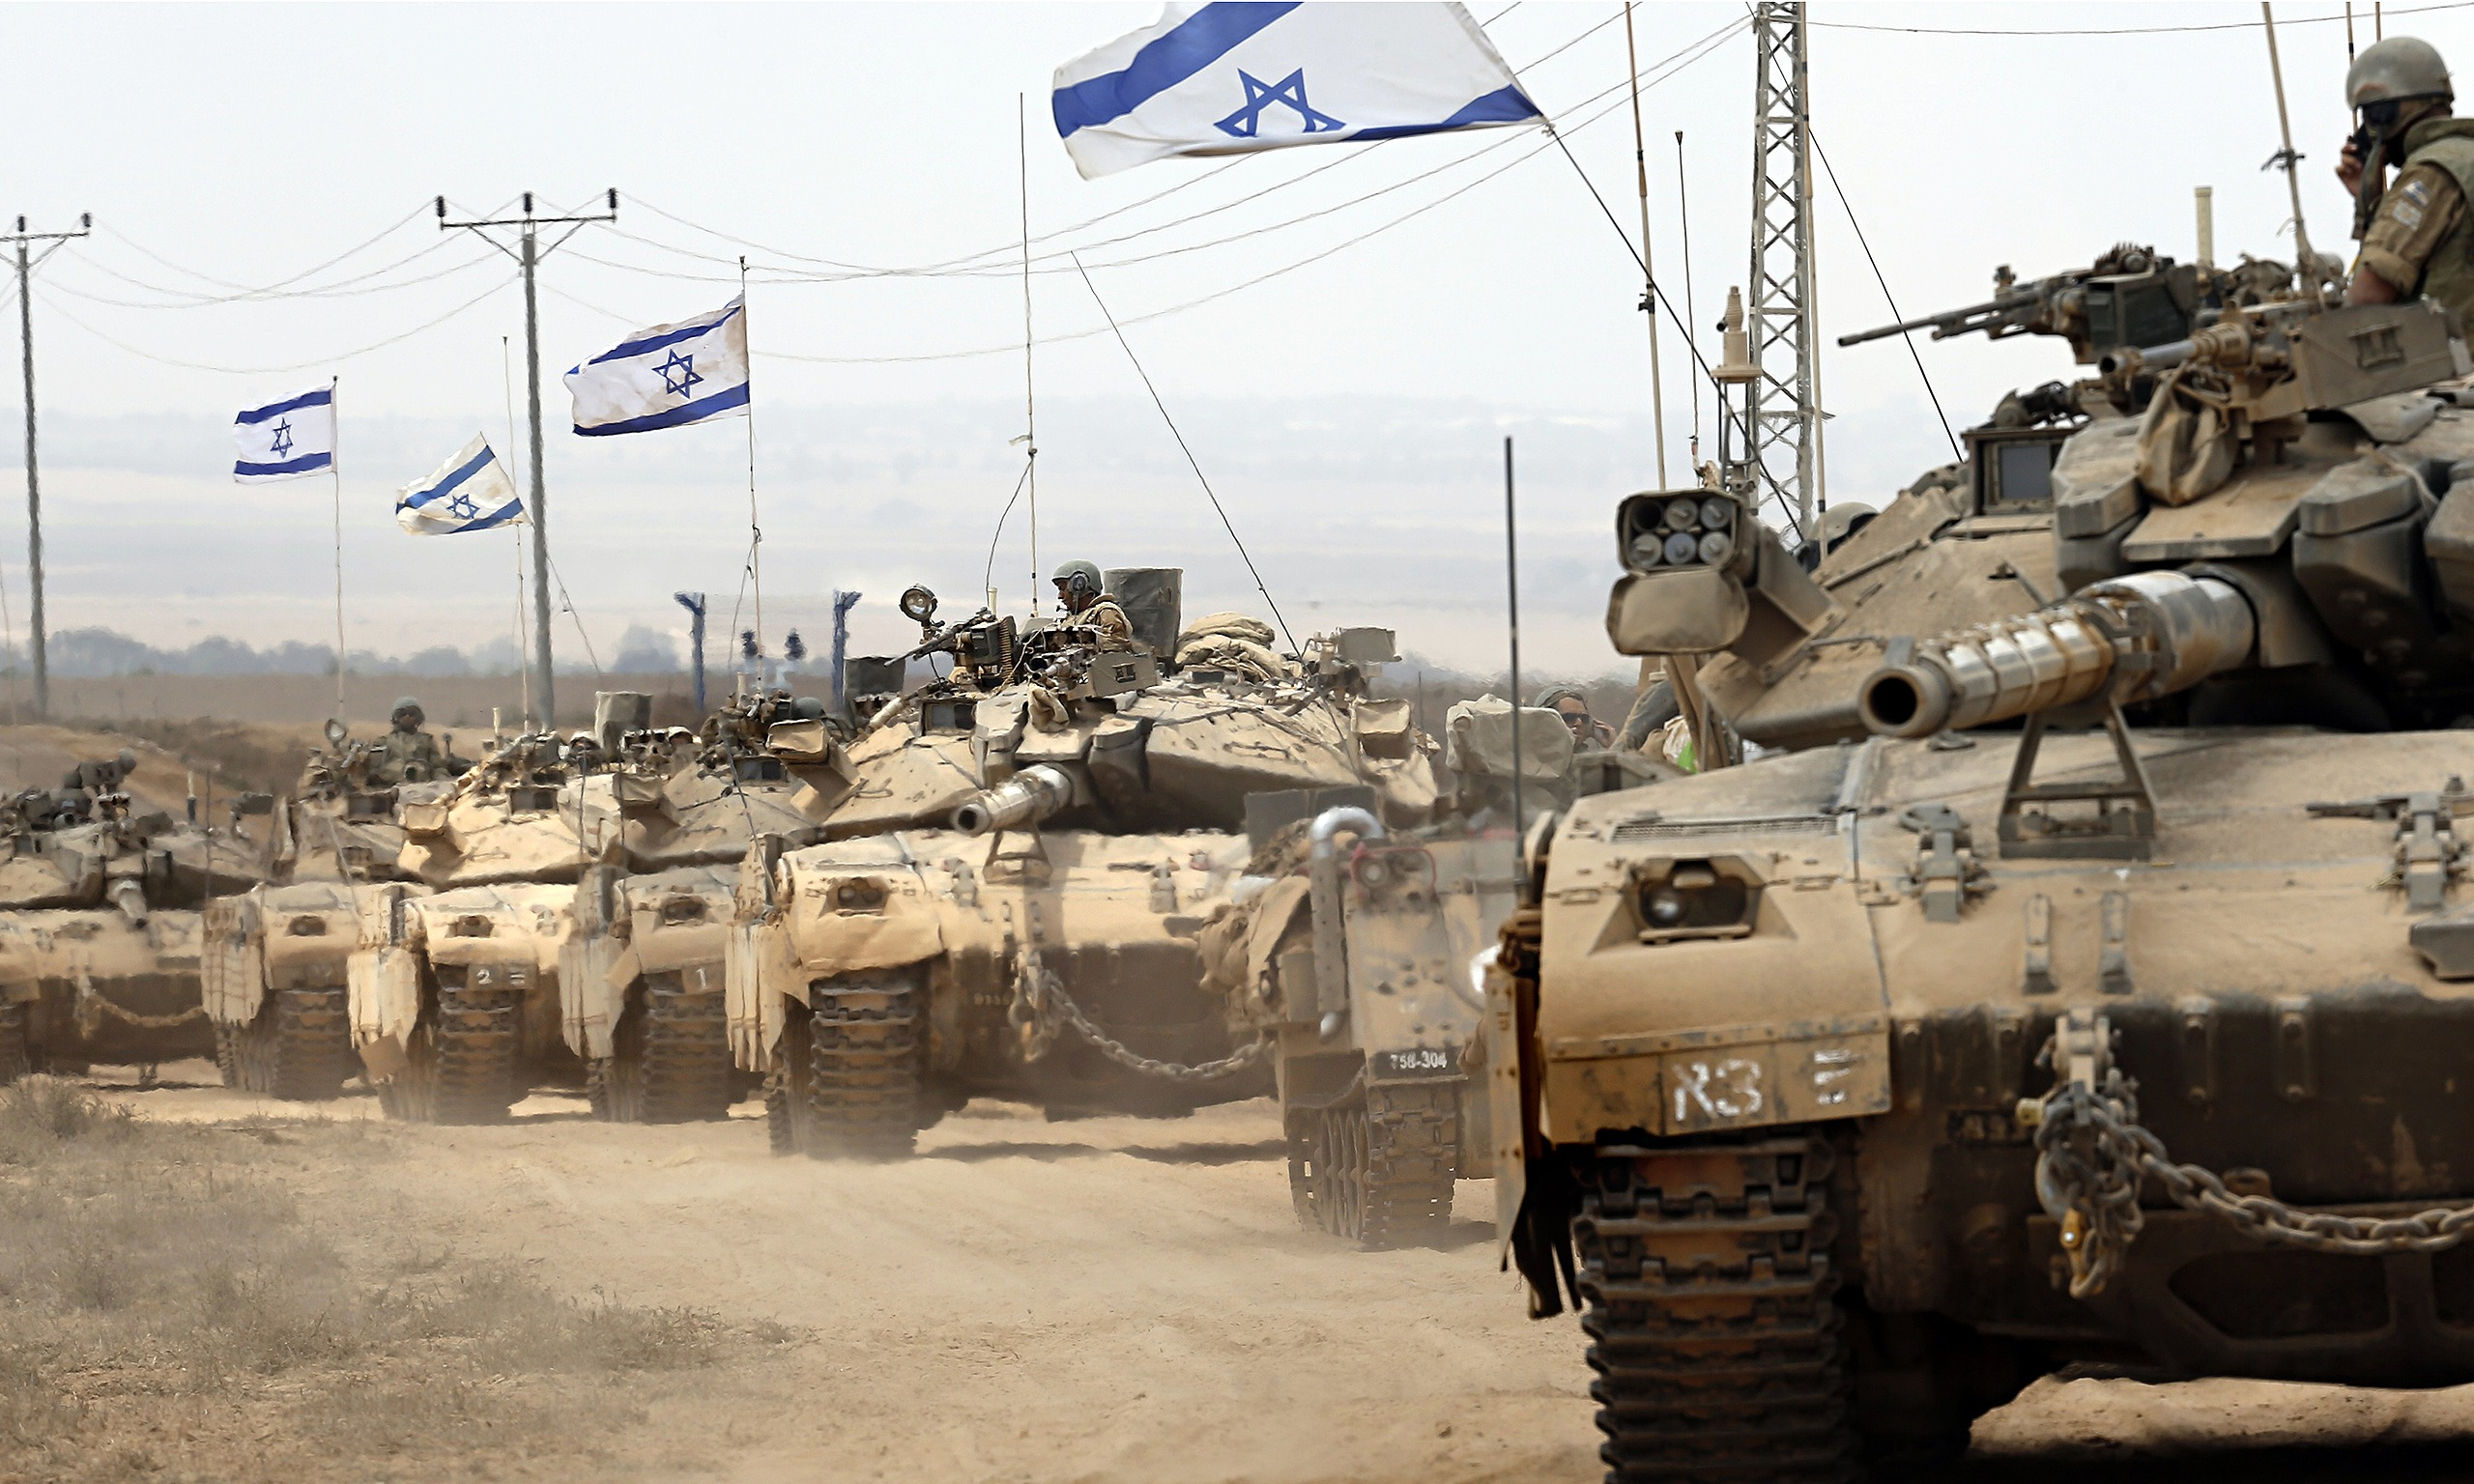 Relief Among Israelis As Troops Pull Out Of Gaza But No